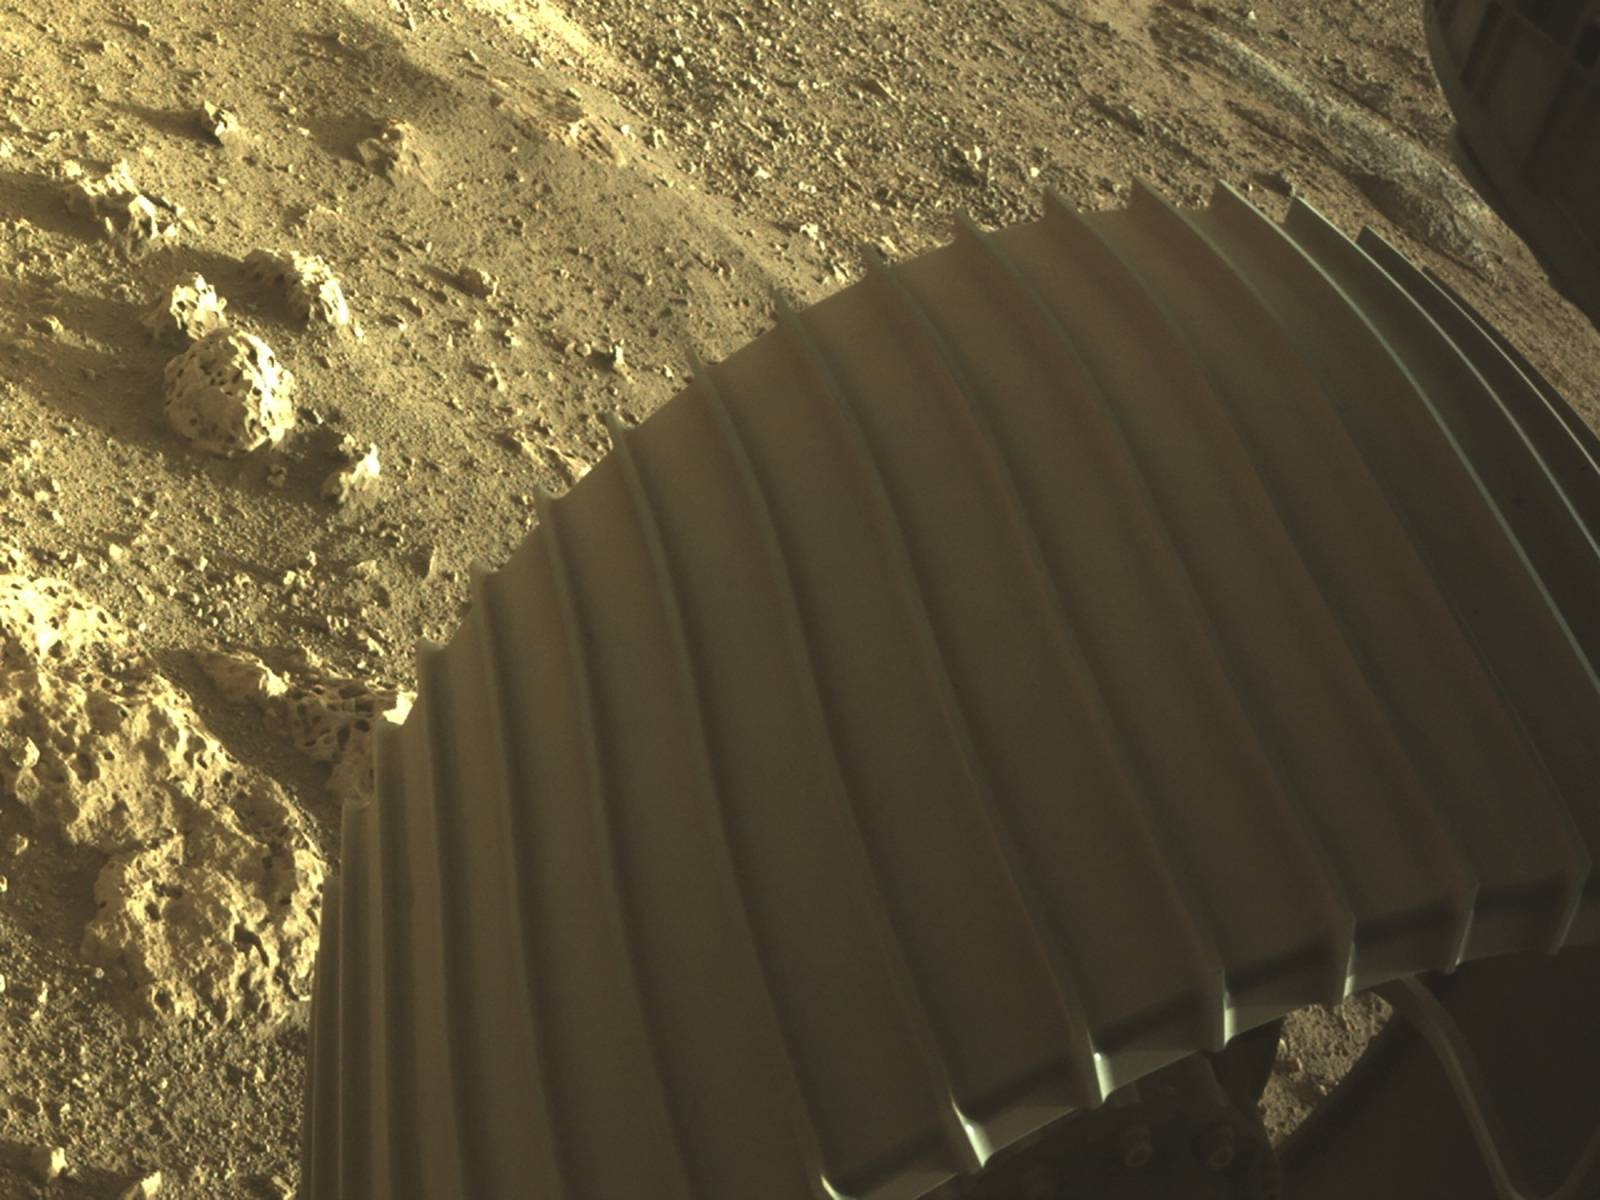 One of the six wheels aboard NASA's Perseverance Mars rover is seen in a high-resolution, color image